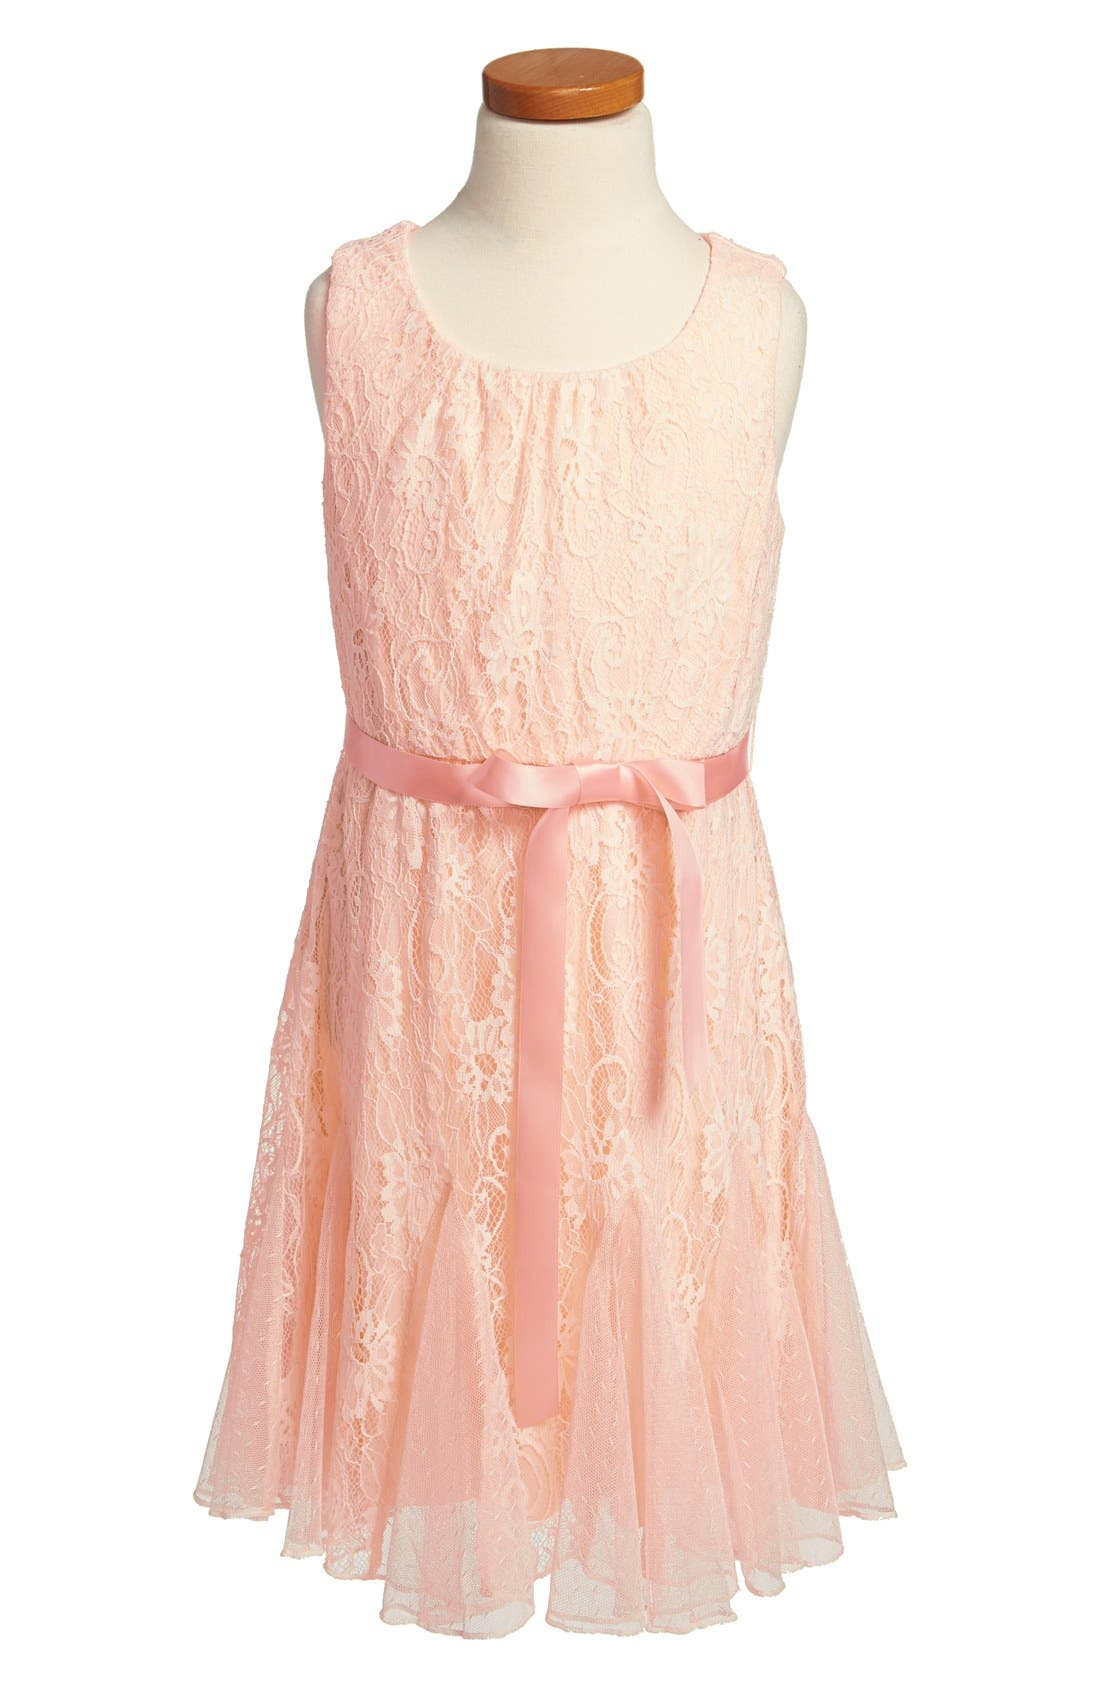 Main Image - Roxette Sleeveless Lace Dress (Big Girls)